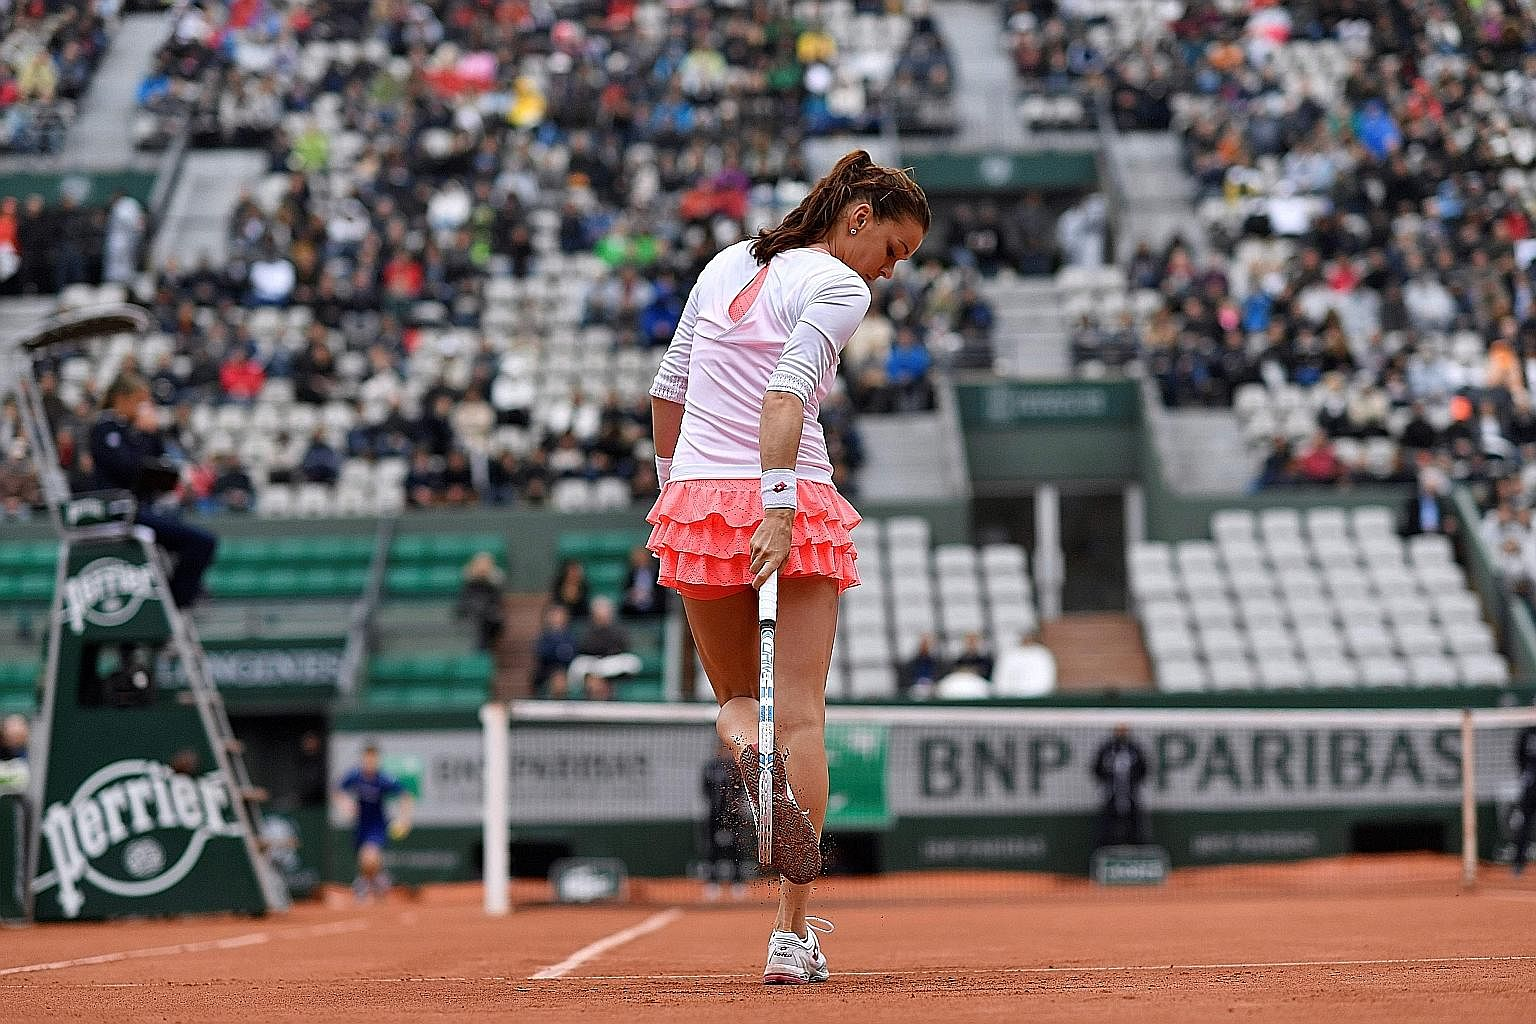 Agnieszka Radwanska removing clay from her shoes during her fourth-round match against Bulgaria's Tsvetana Pironkova at the French Open. But the Pole came unstuck, losing 6-2, 3-6, 3-6.